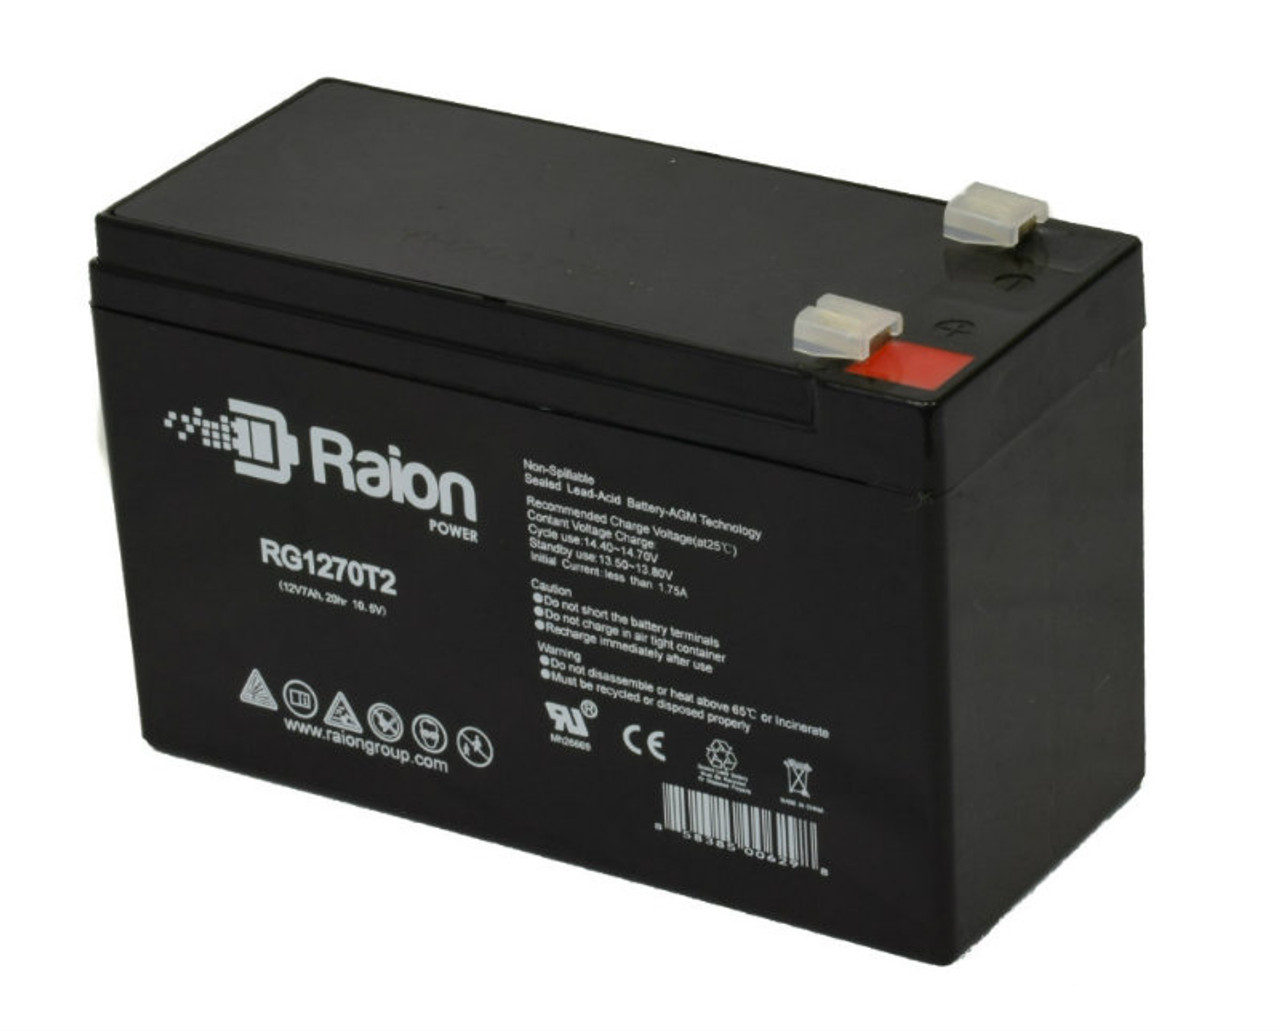 Raion Power RG1270T1 Replacement Battery for Power Patrol SLA1275